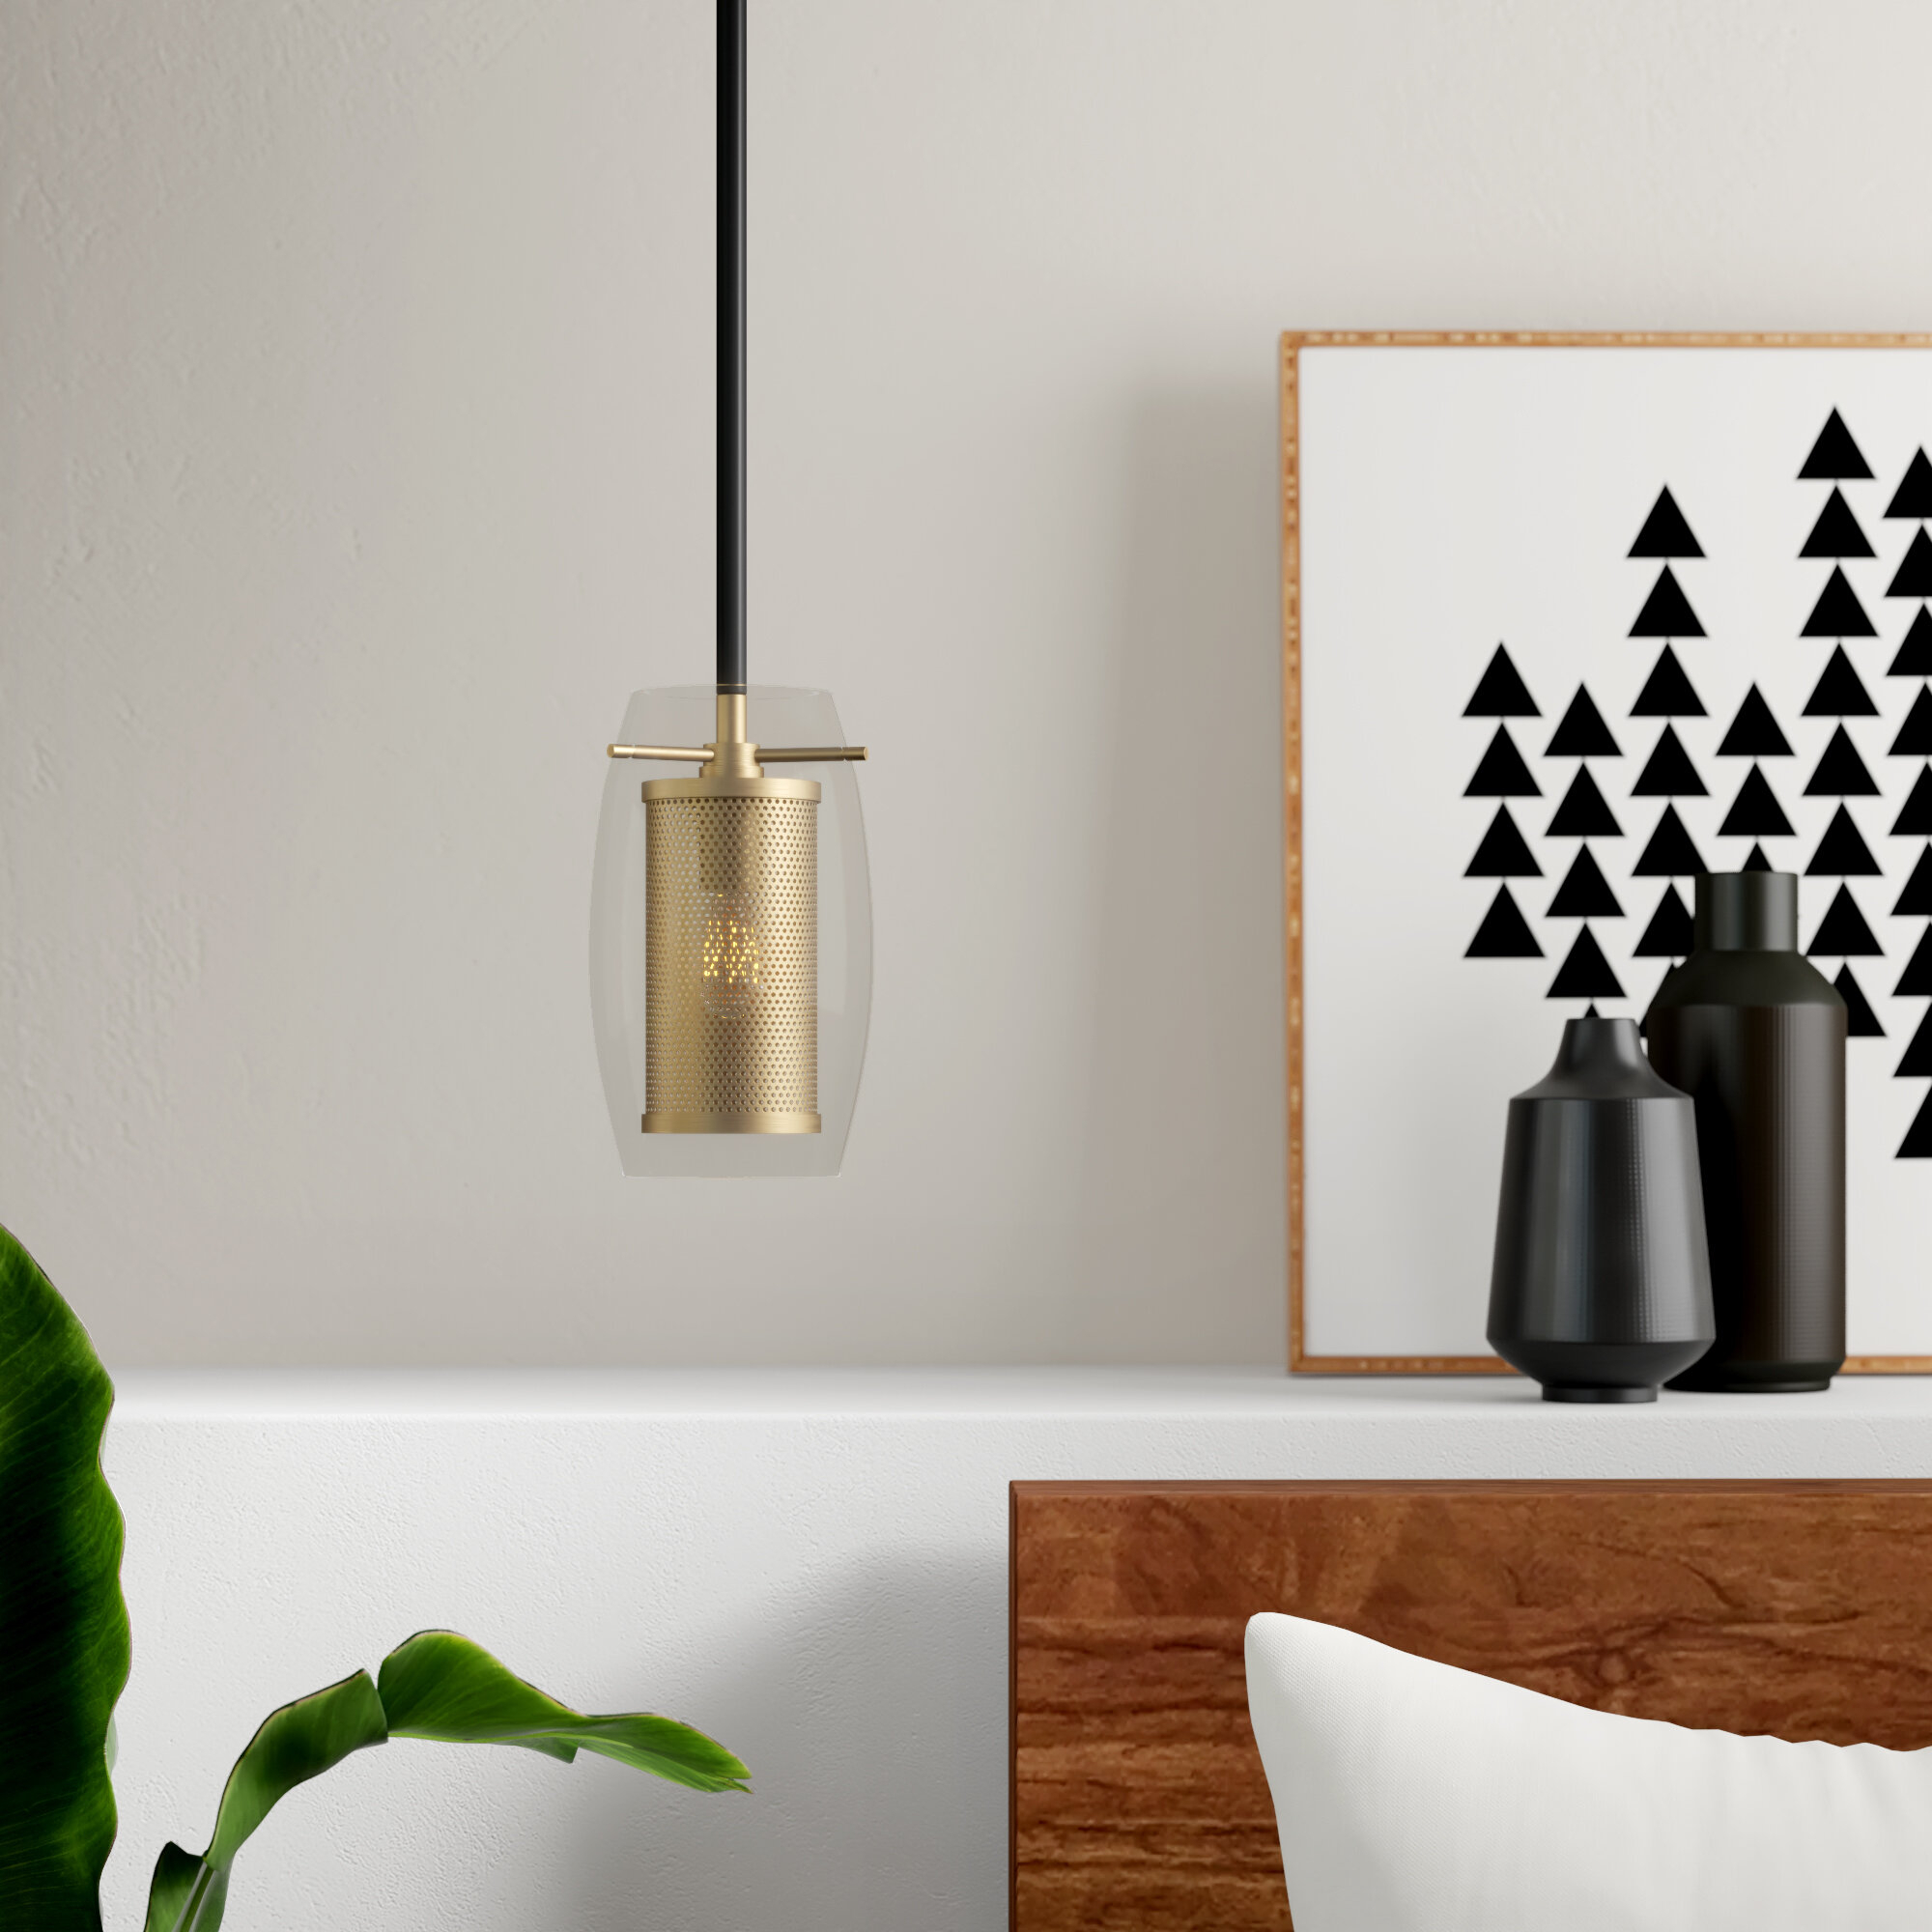 Depp 1 Light Single Cylinder Pendant Throughout Fennia 1 Light Single Cylinder Pendants (Gallery 8 of 30)